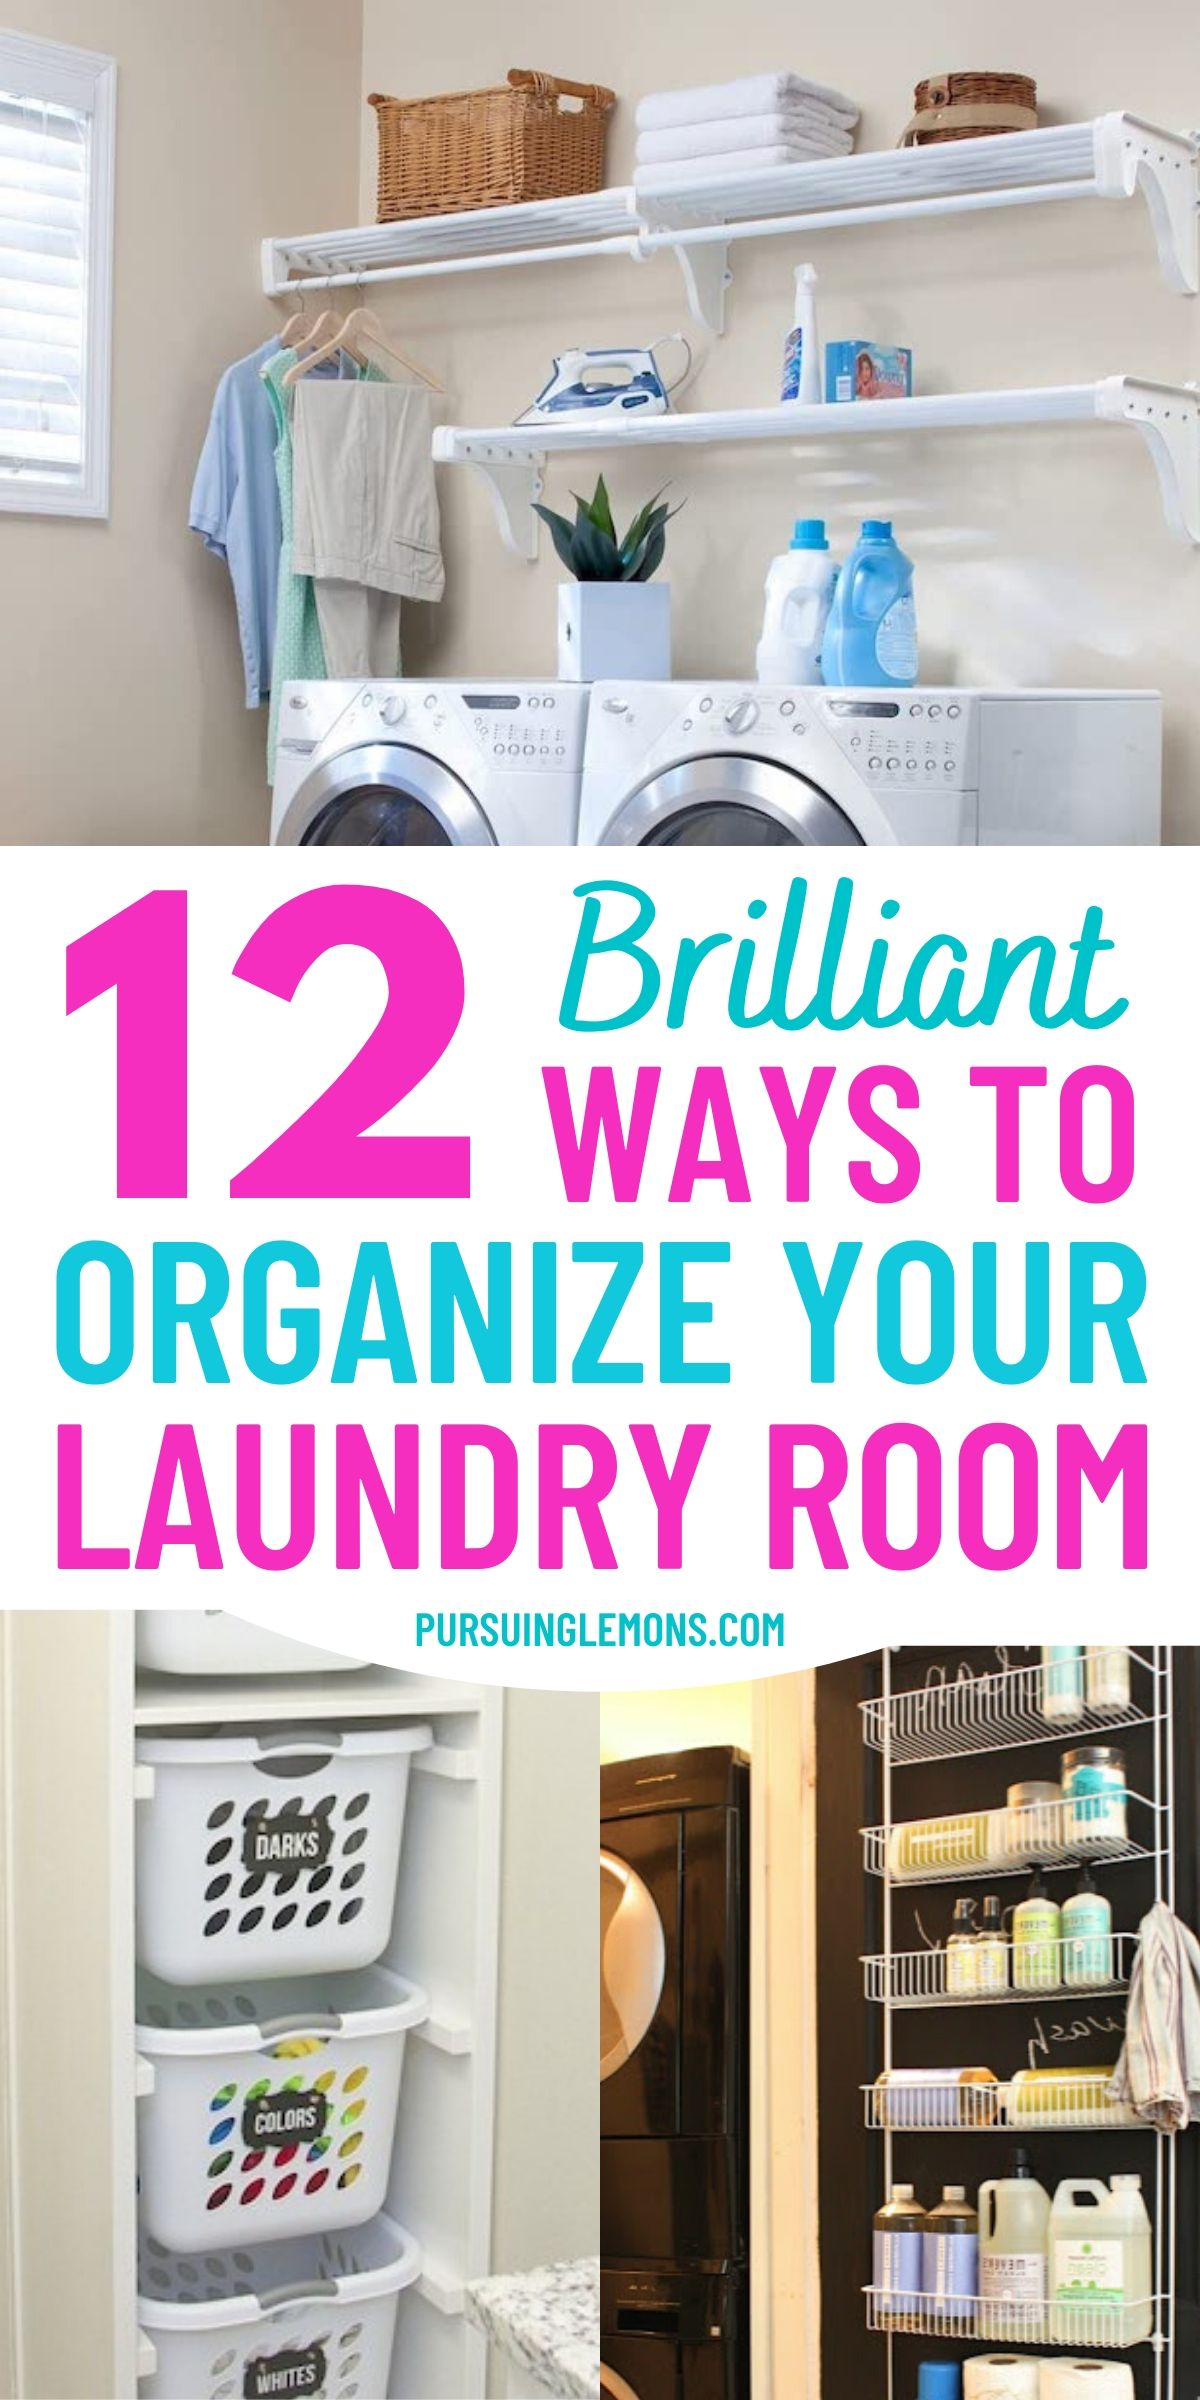 12 Laundry Room Hacks That Will Make Your Life So Much Easier | These laundry room organization ideas are going to make you love doing laundry again! Try these laundry room tricks and laundry room organization hacks today! #laundryhacks #laundryorganization #laundryroom